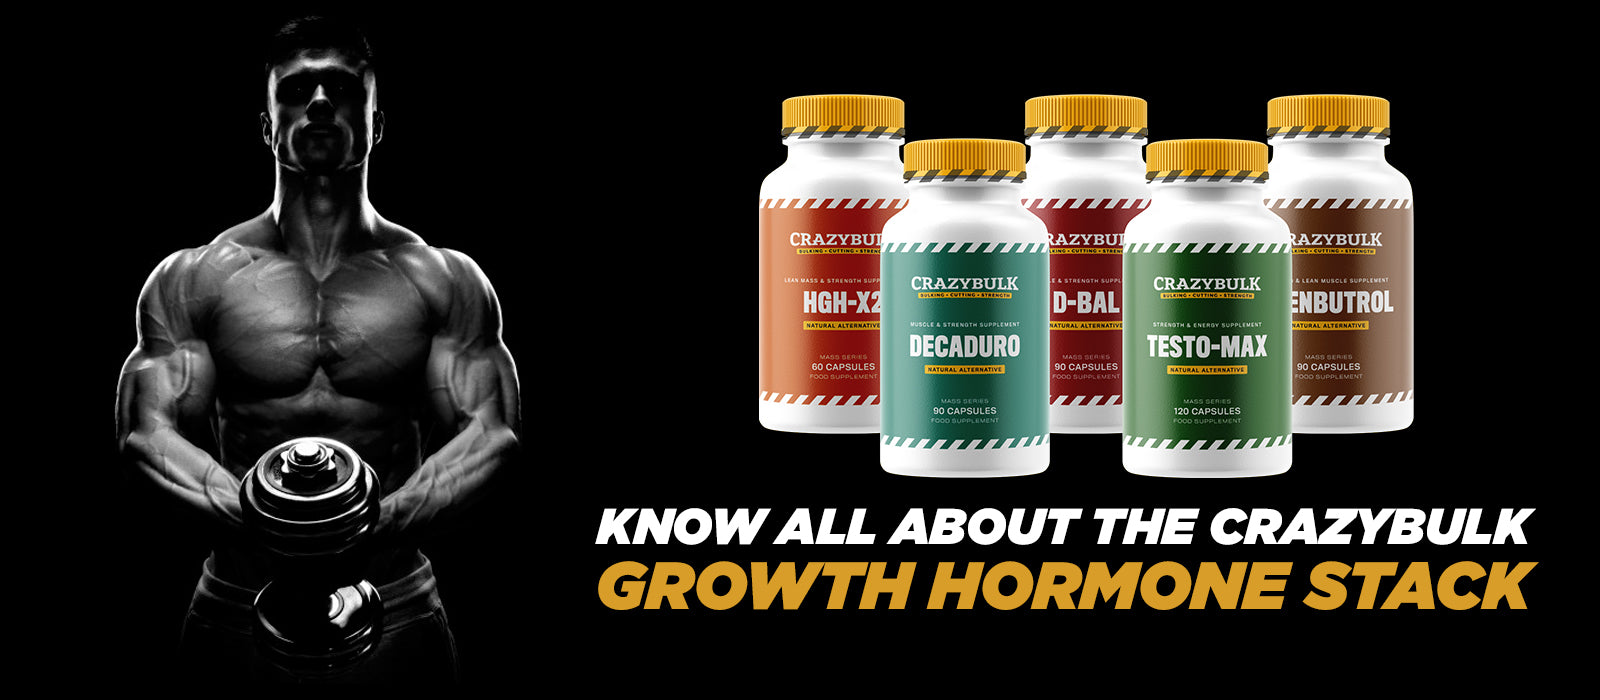 Know All About The CrazyBulk Growth Hormone Stack